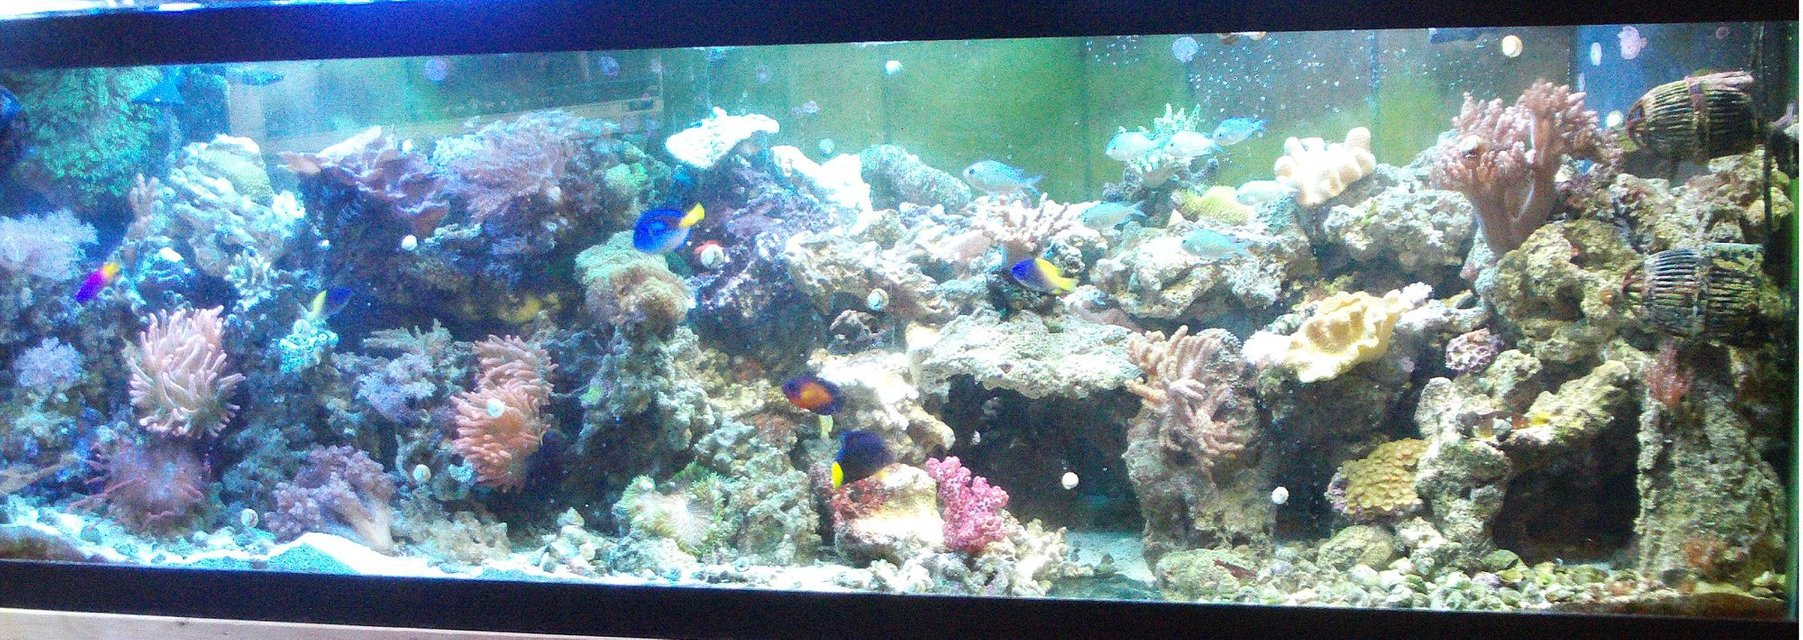 Rated #33: 277 Gallons Reef Tank - My 125 reef display